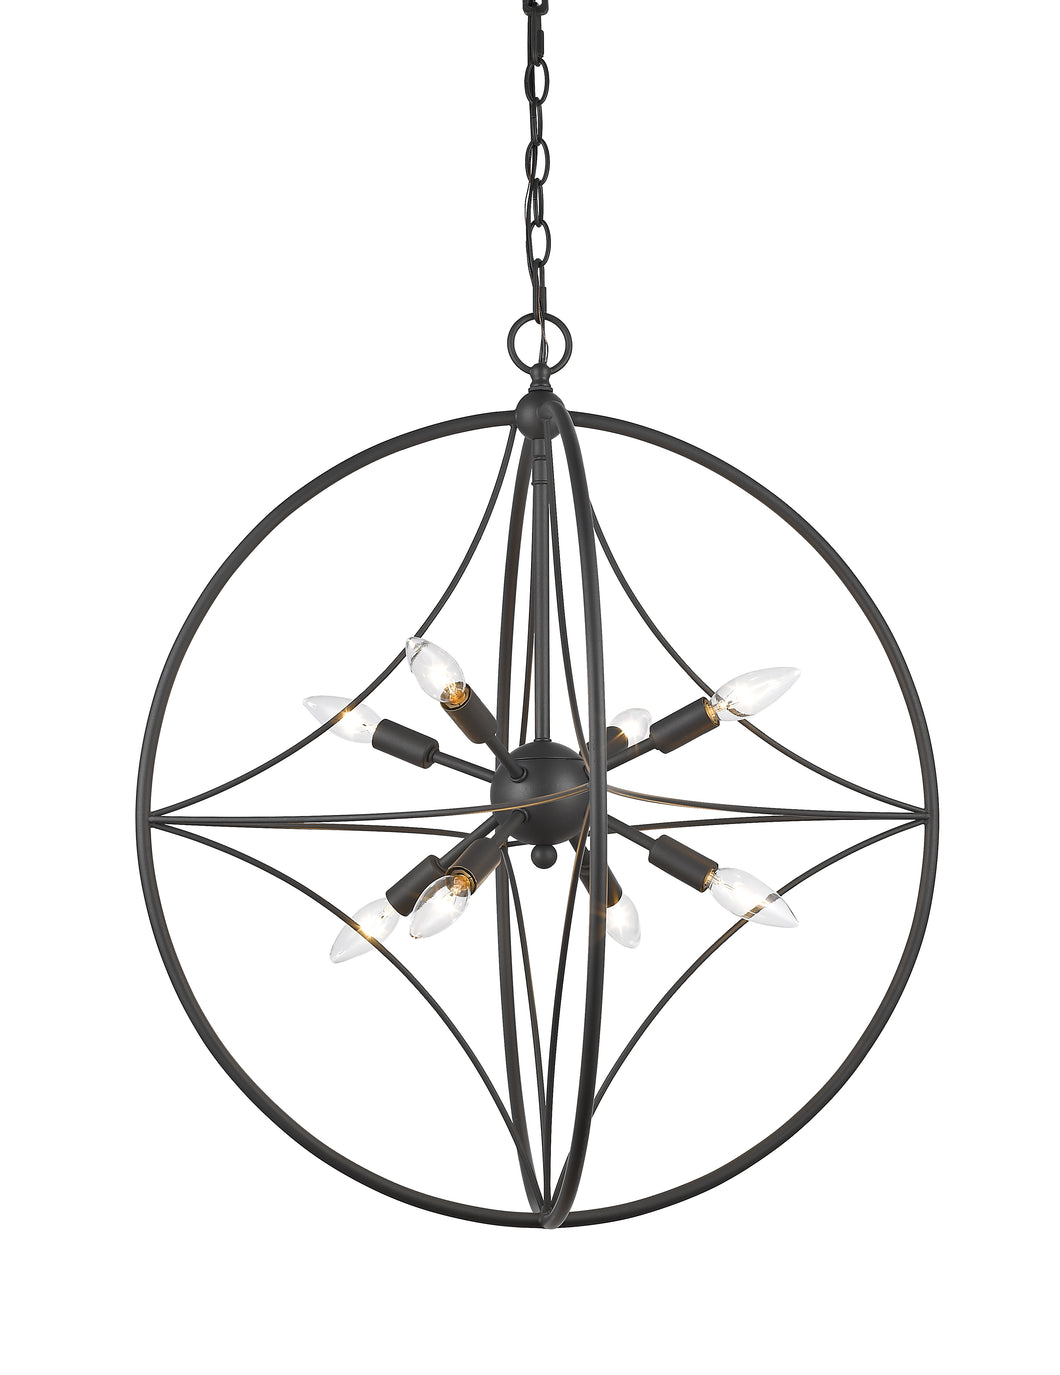 Z-lite Cortes 8-Light Pendant Bronze Steel Living Room Pendant - ChandeLighting